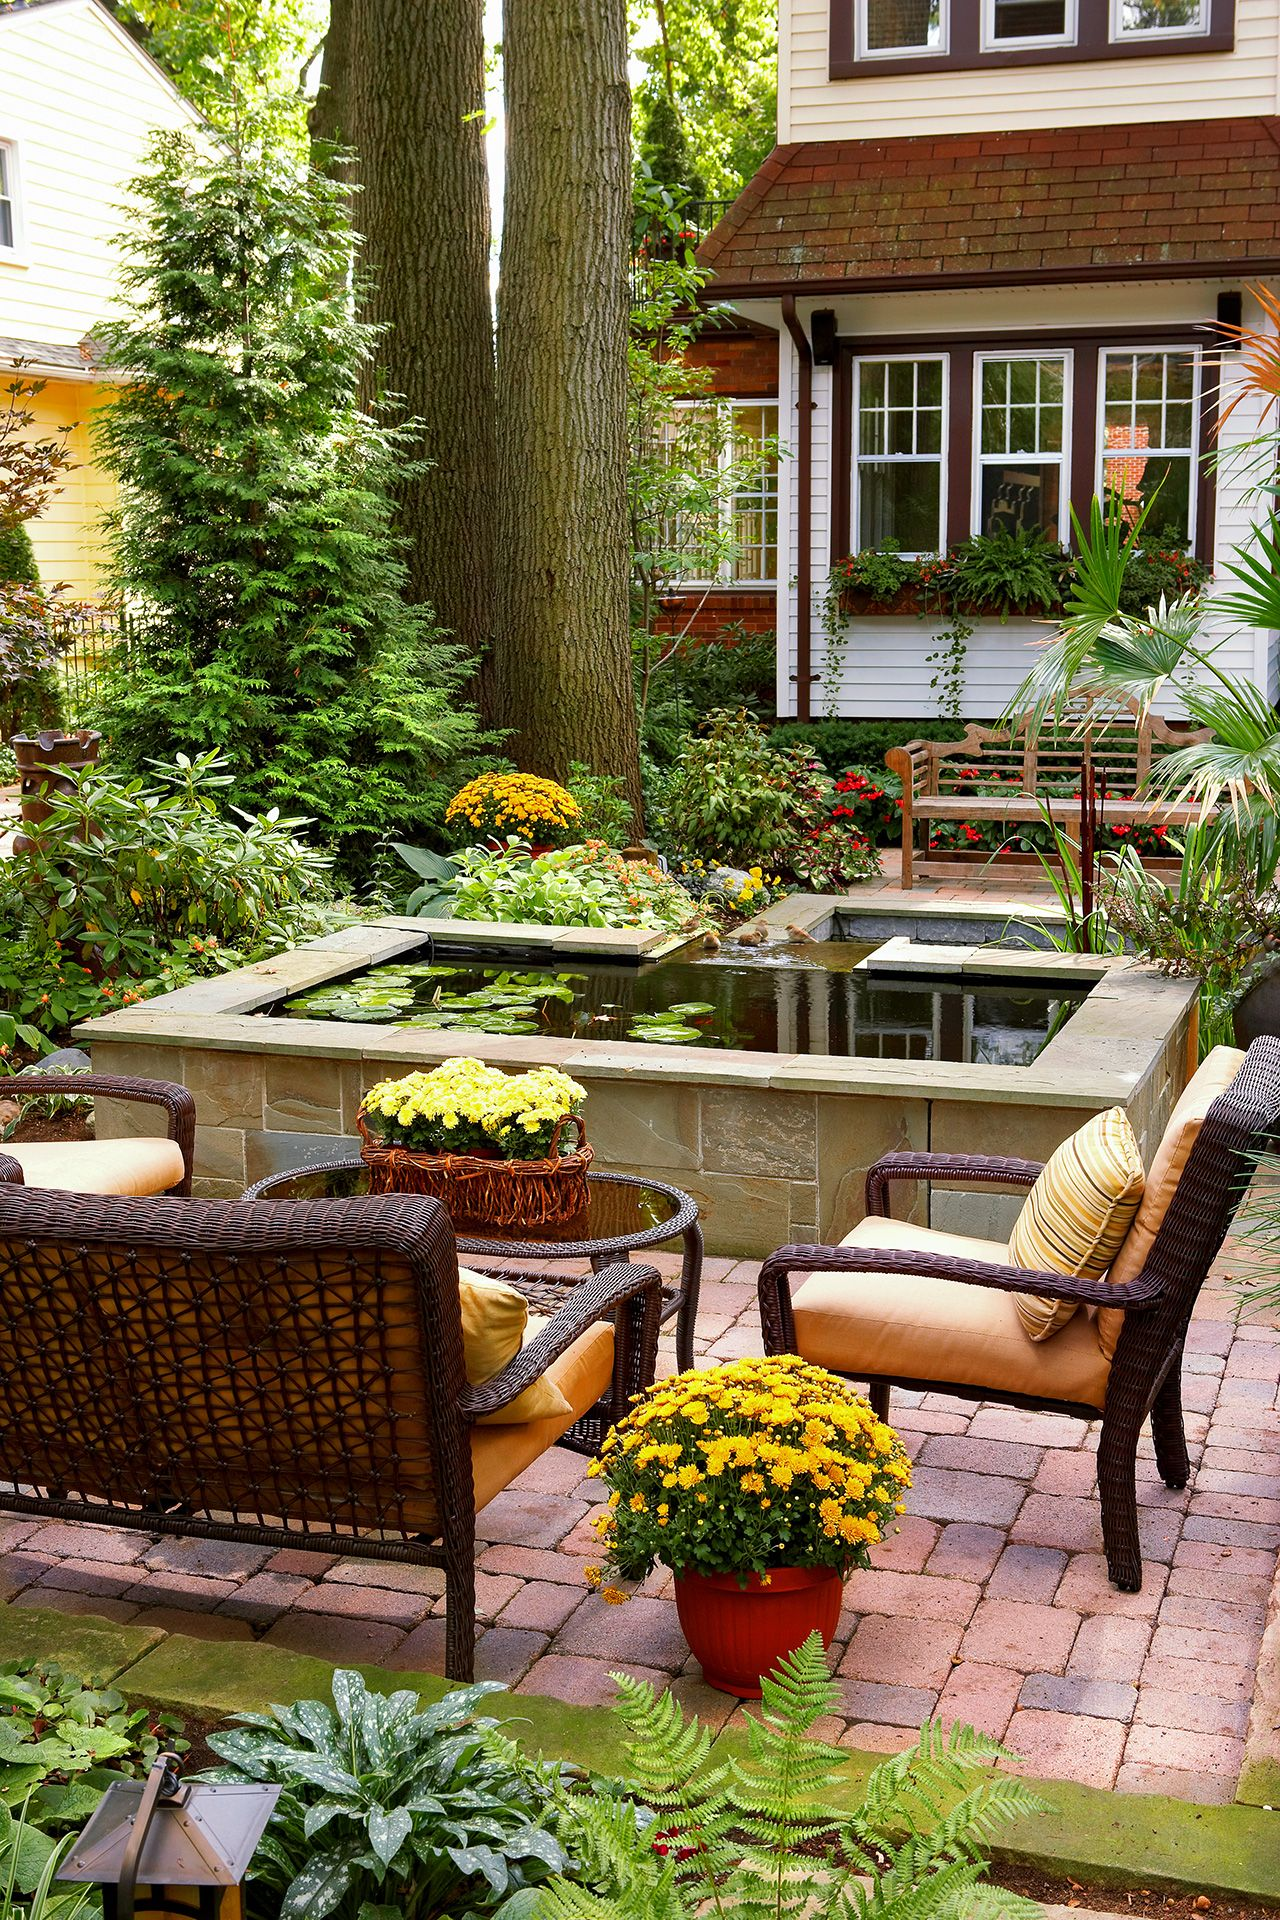 20 Landscaping Ideas to Perk Up Your Backyard   Small ... on Courtyard Pond Ideas id=36816